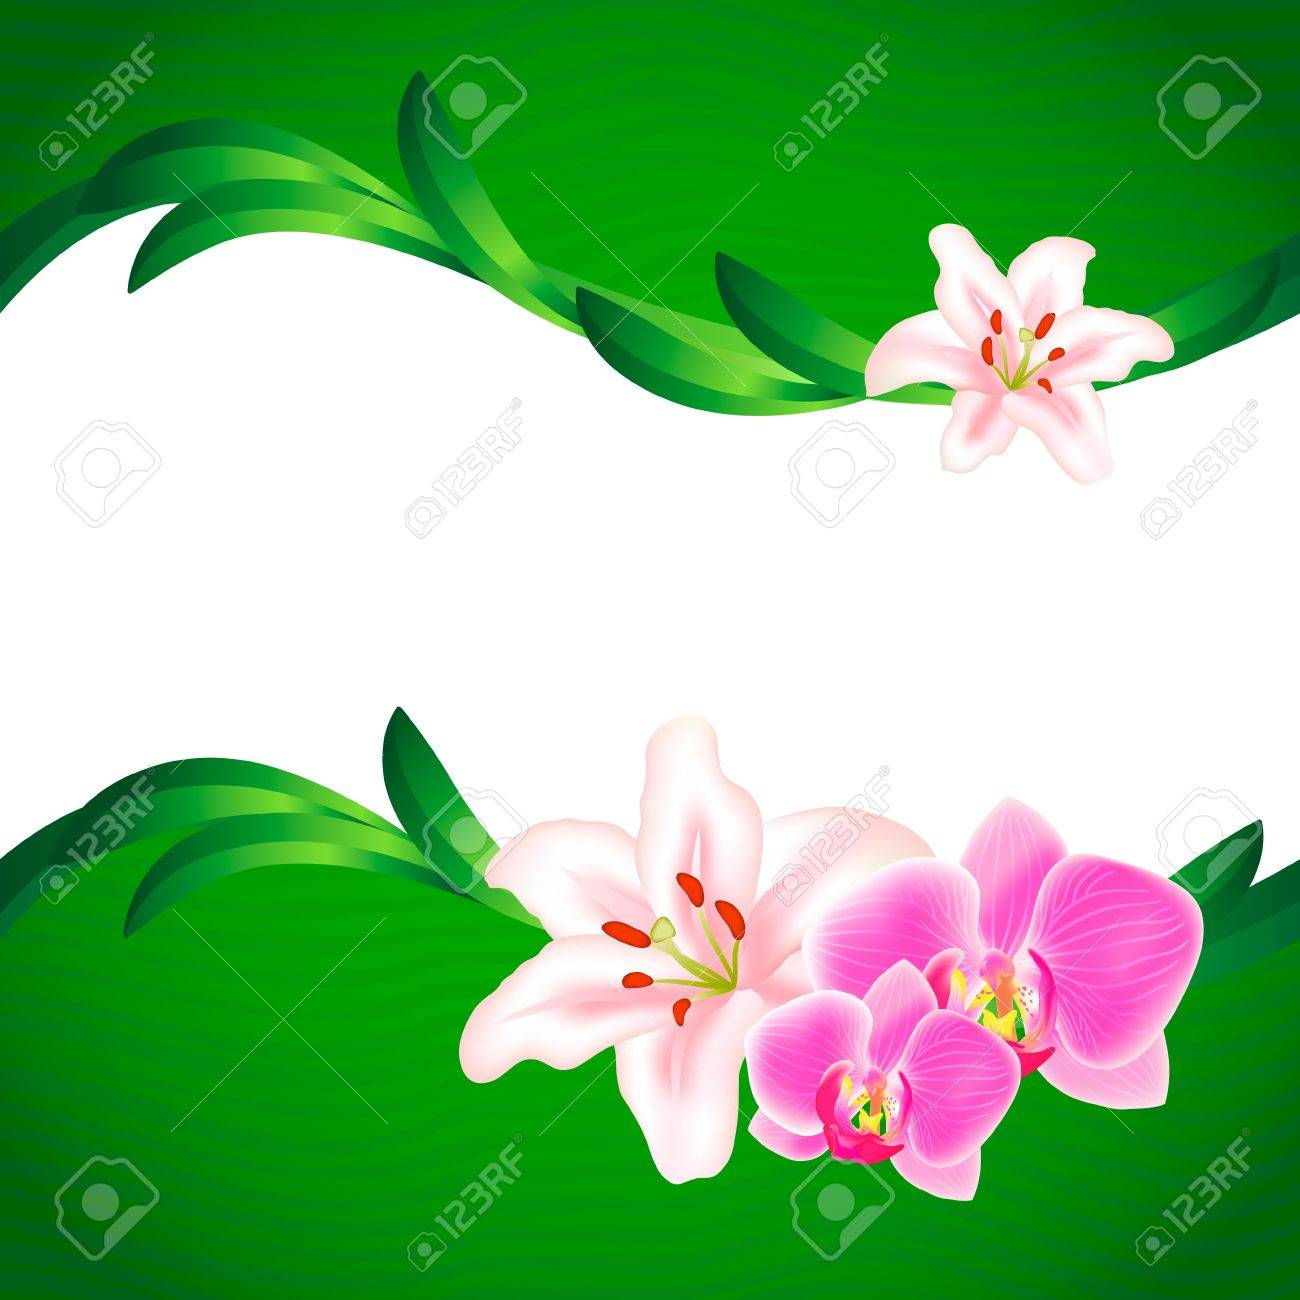 Beautiful Lily and Orchid background Stock Vector - 13662693